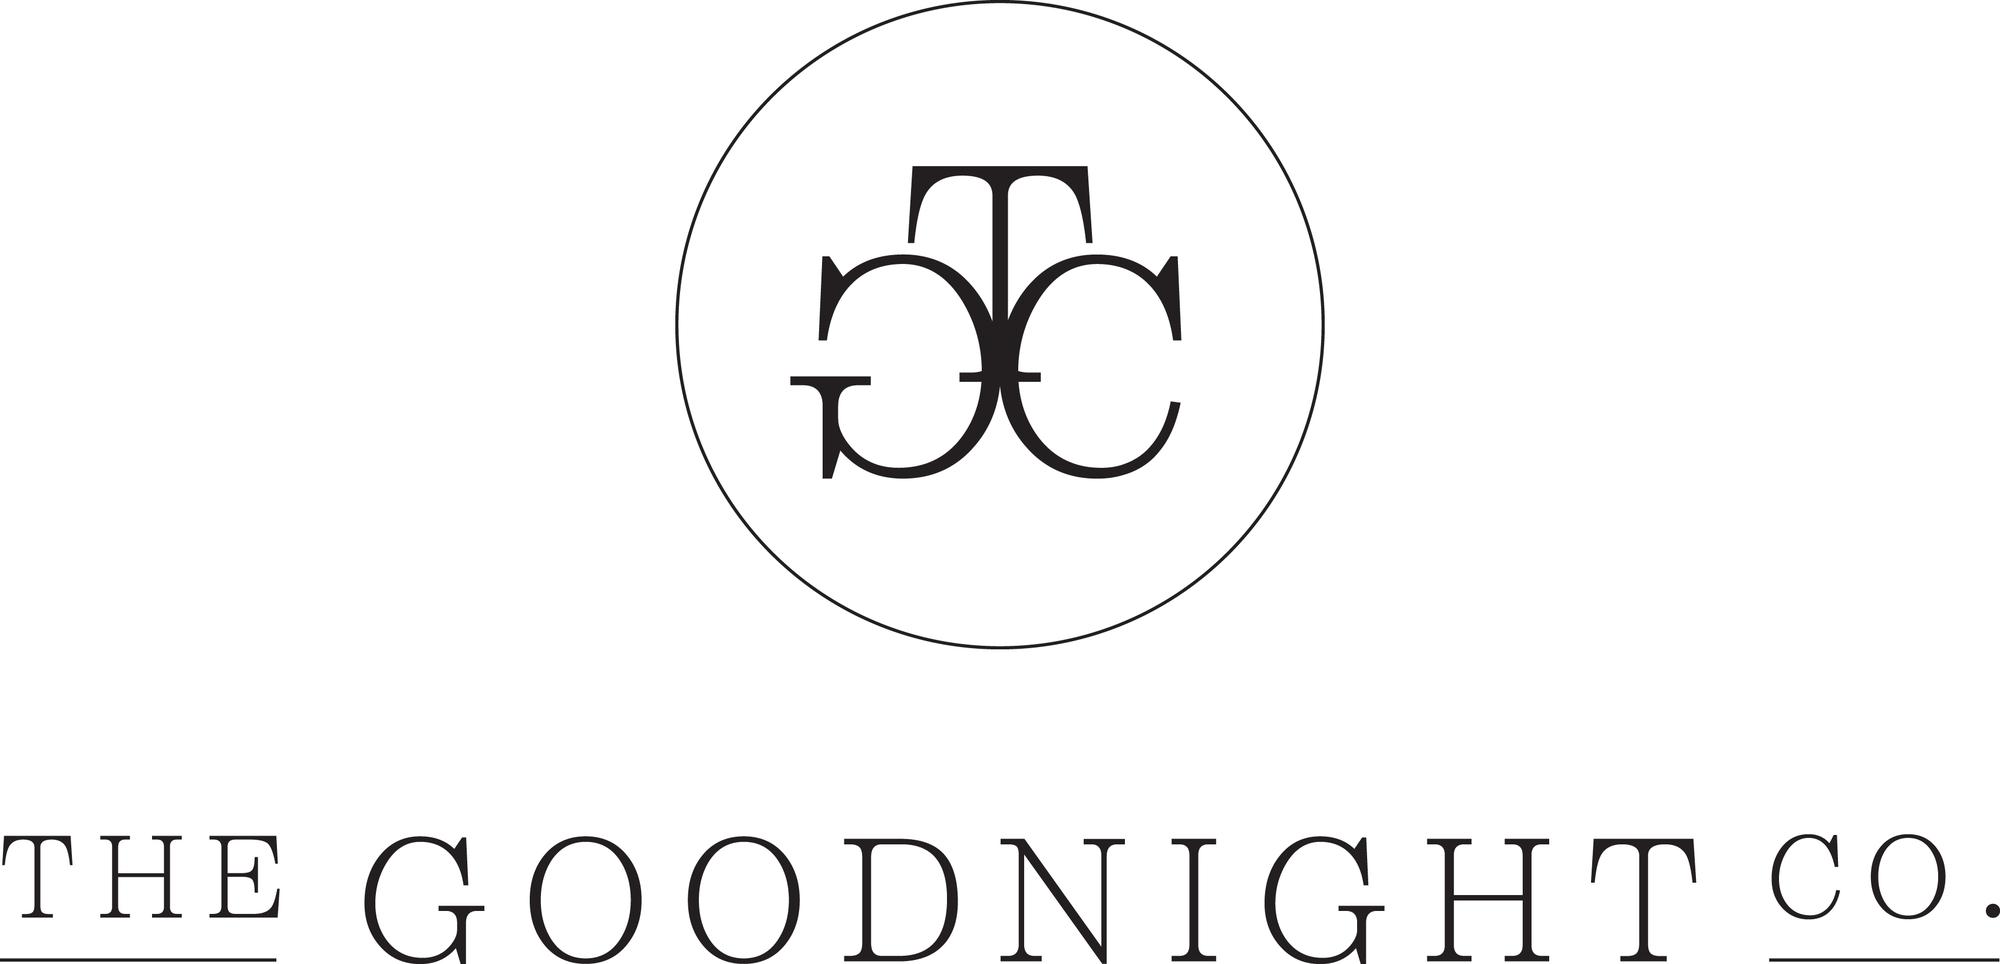 The Goodnight Co